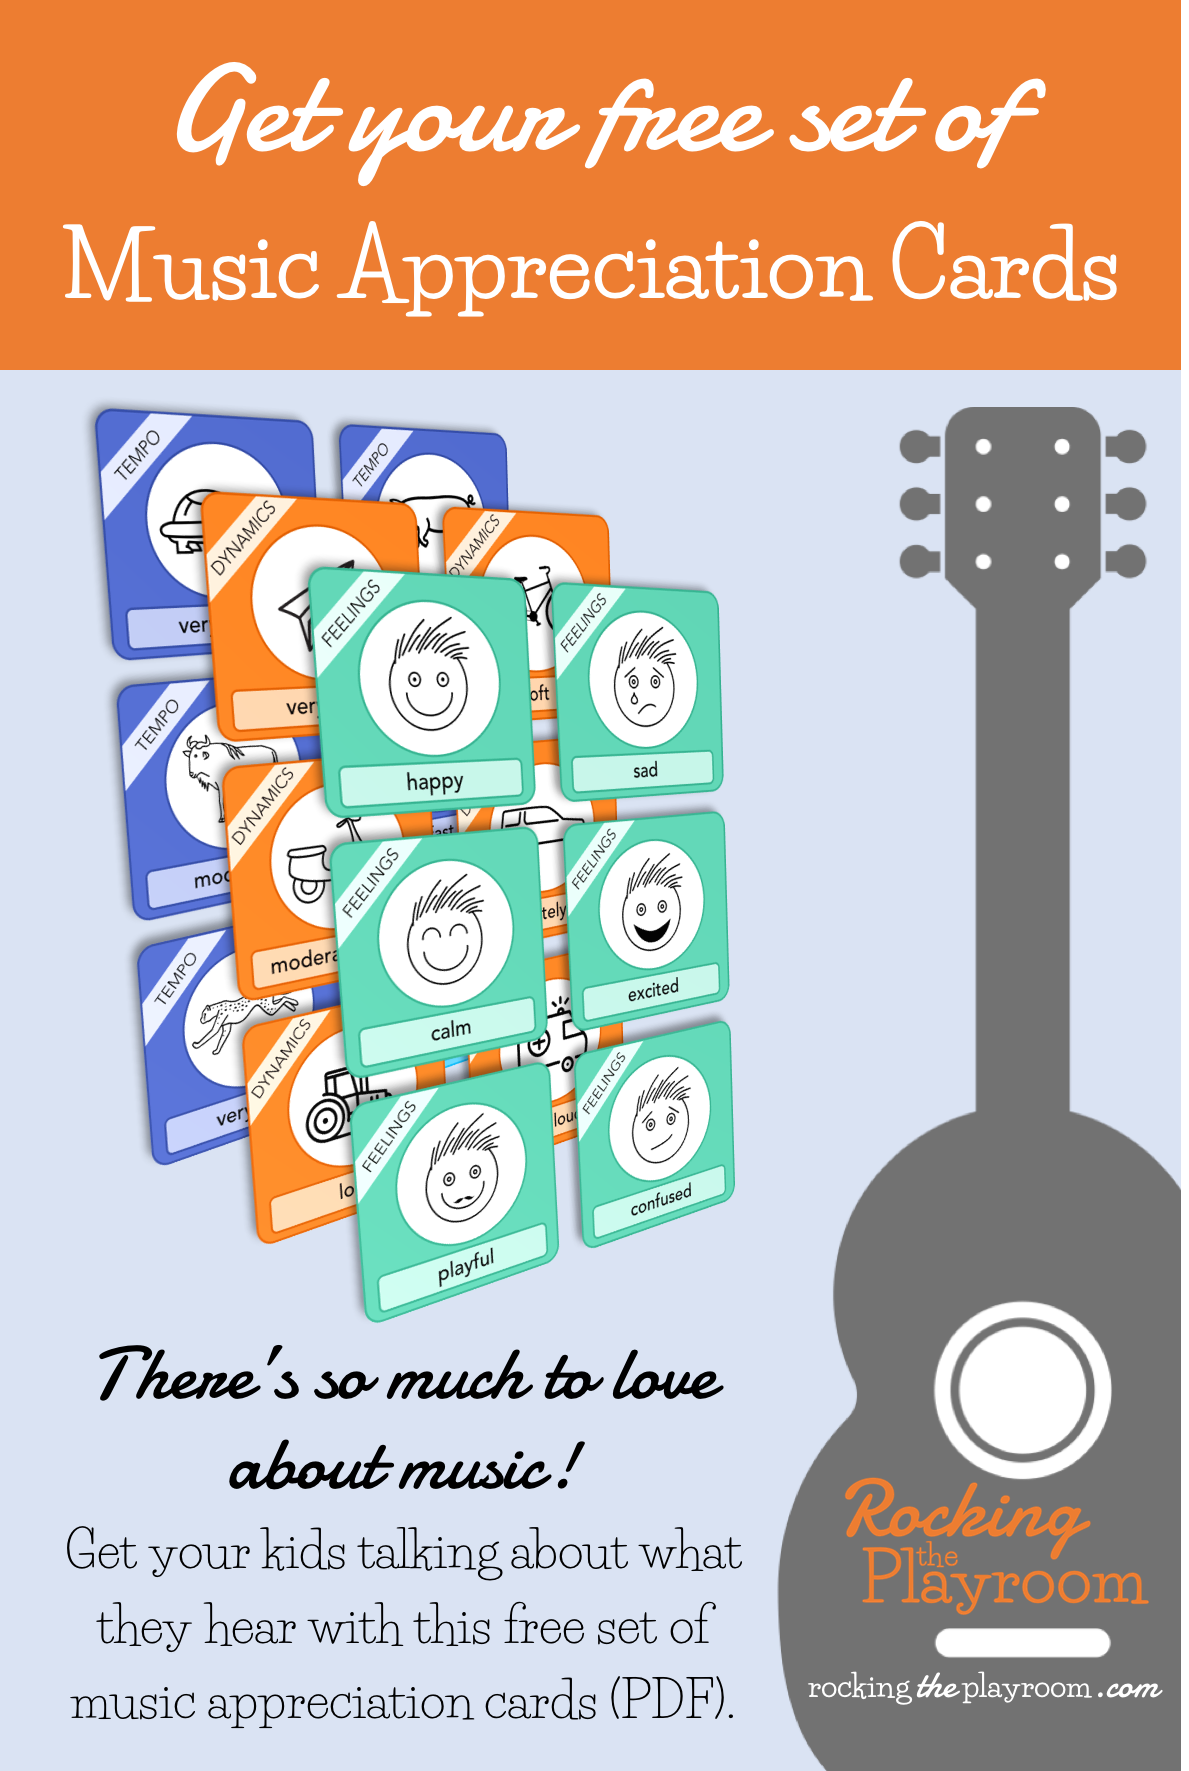 Music Appreciation Cards for Kids from Rocking the Playroom